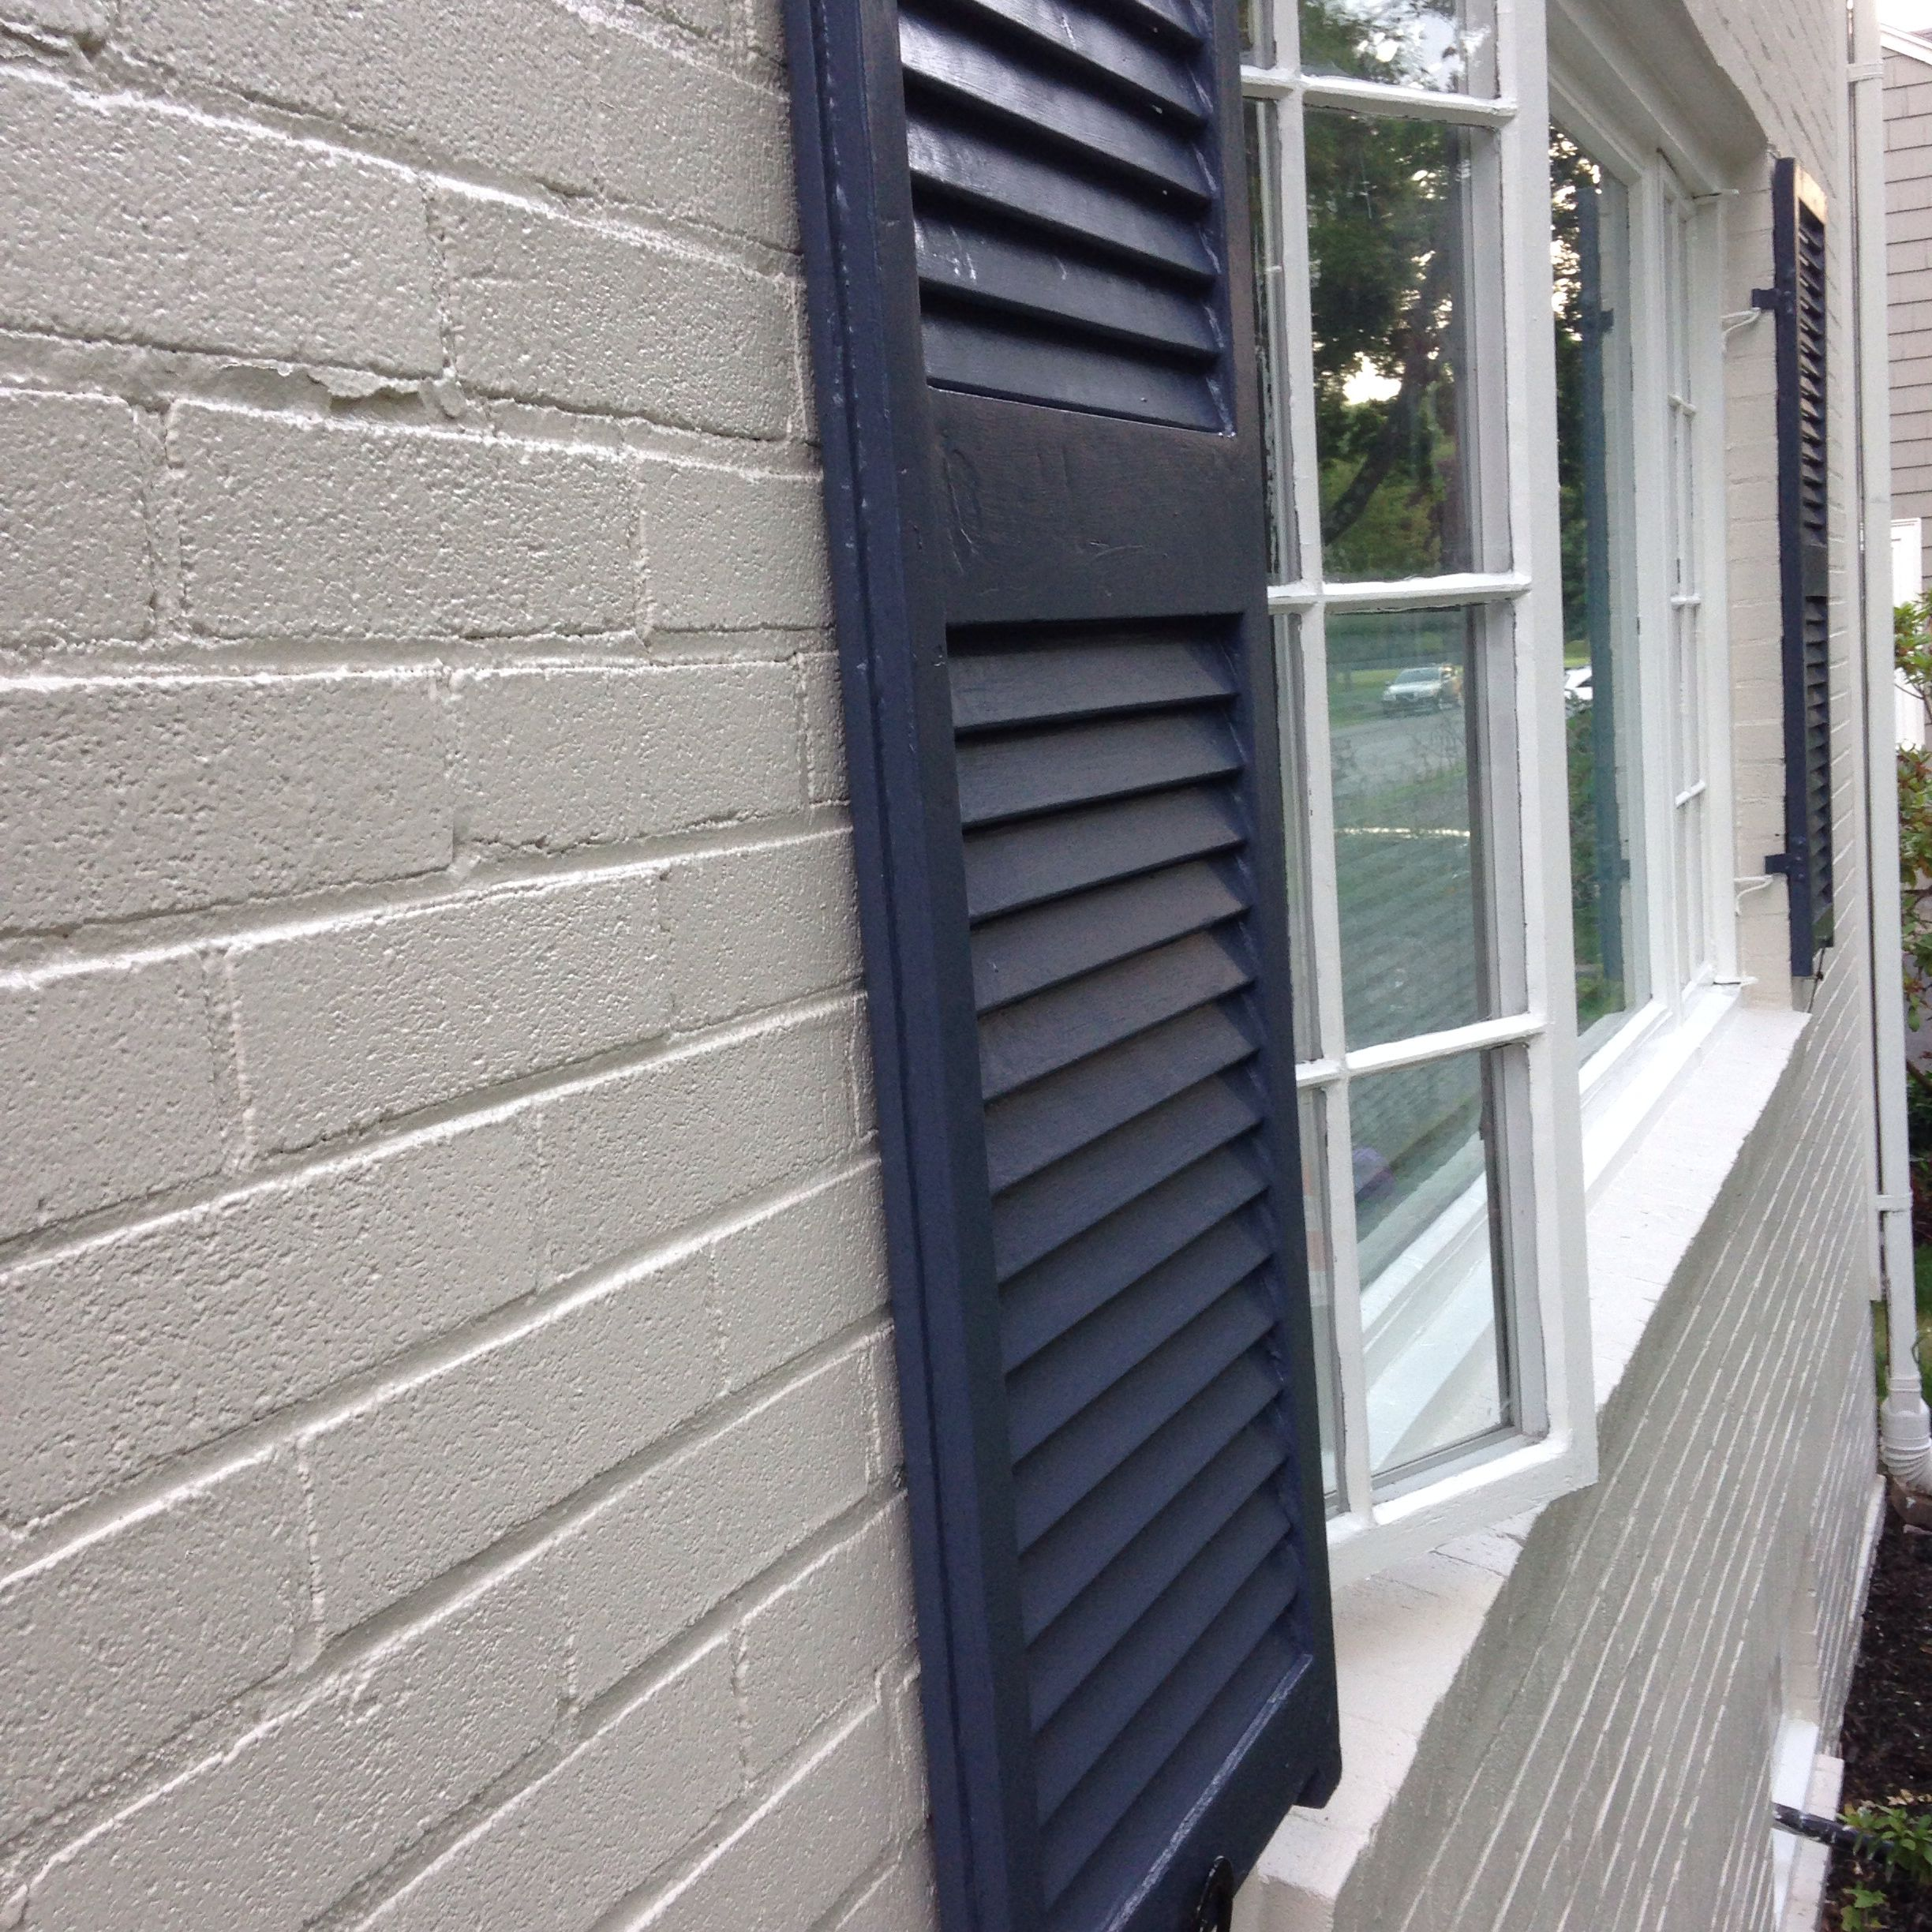 Painted brick exterior ben moore edgecomb grey hale navy White painted brick exterior